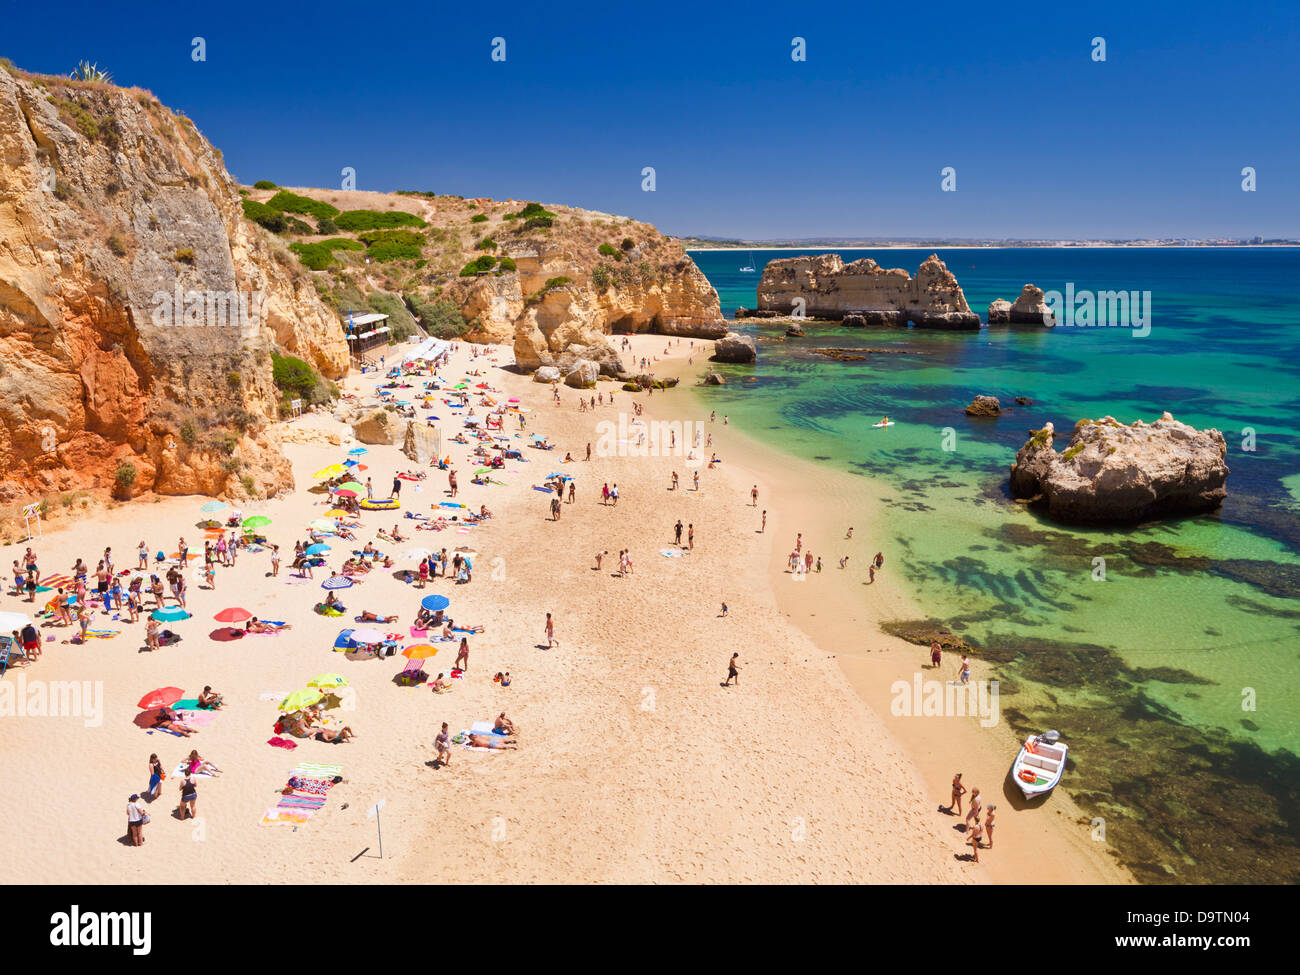 Travel Holidaymakers sunbathing on Praia da Dona Ana sandy beach near the resort of Lagos Algarve Portugal EU Europe - Stock Image